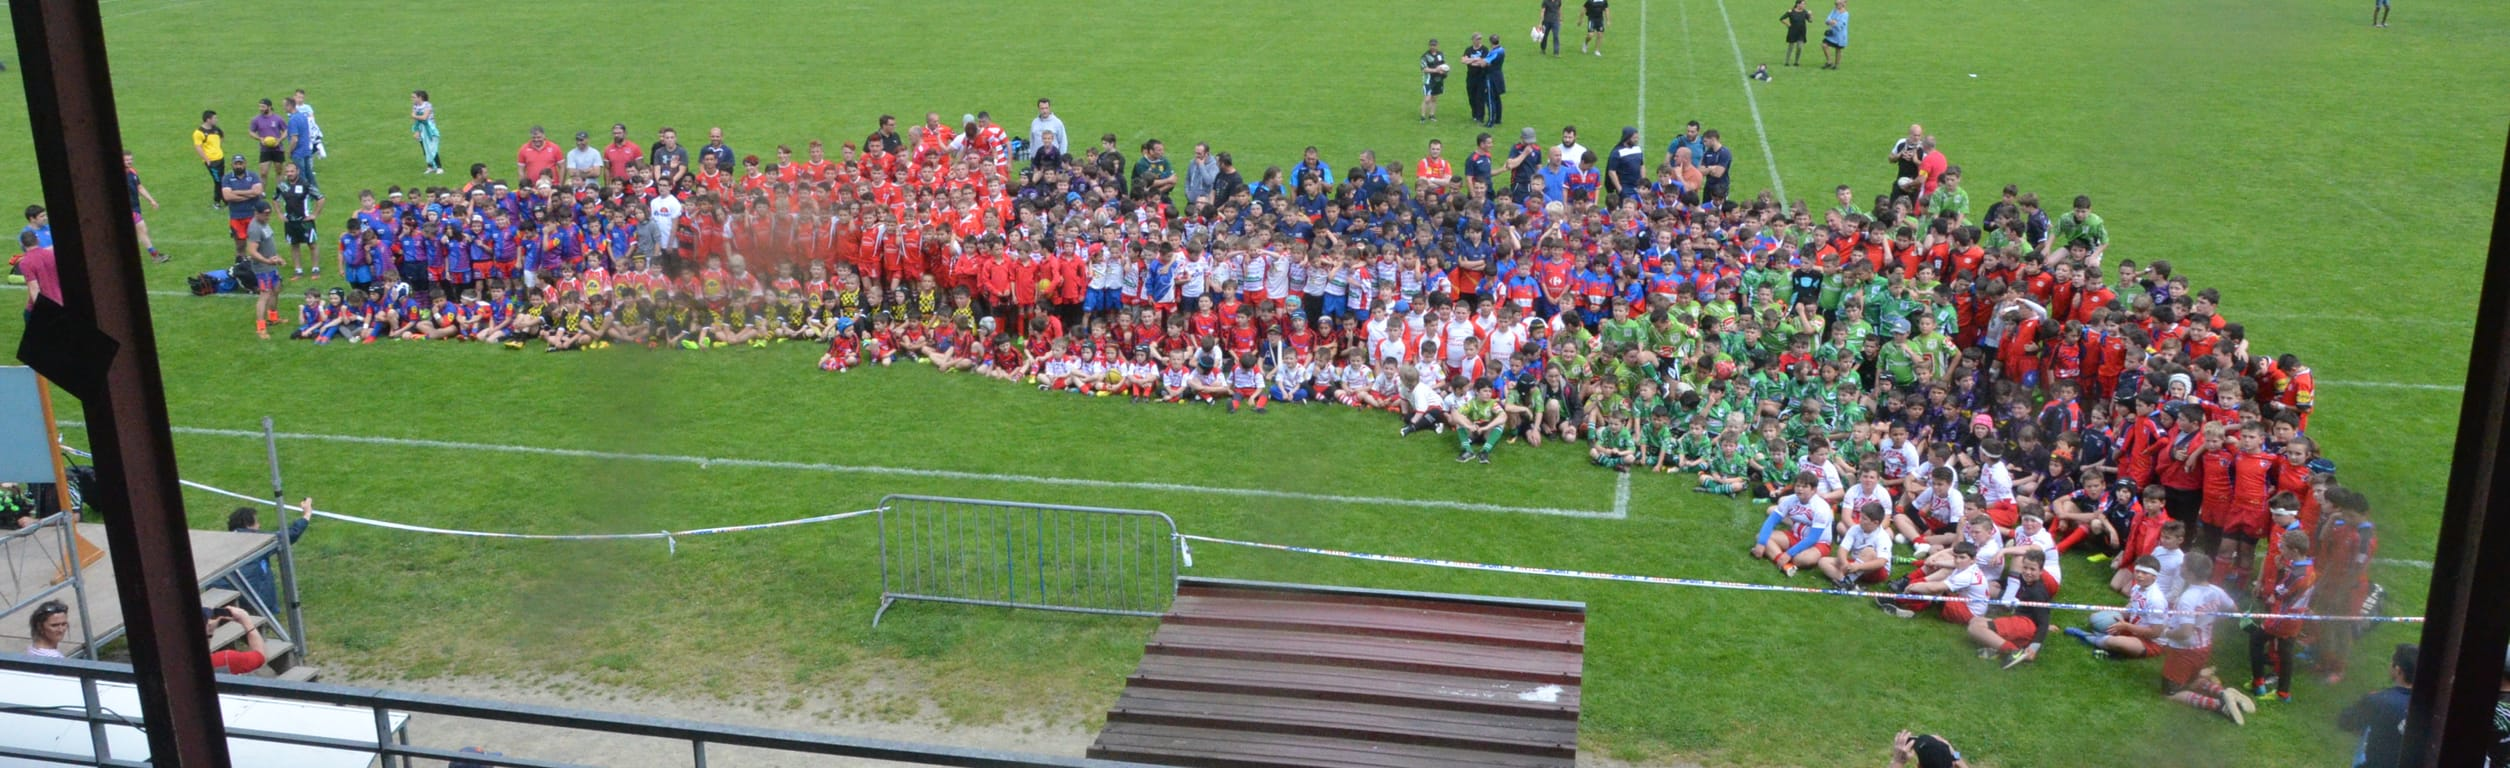 StadeO Maubourguetois Rugby